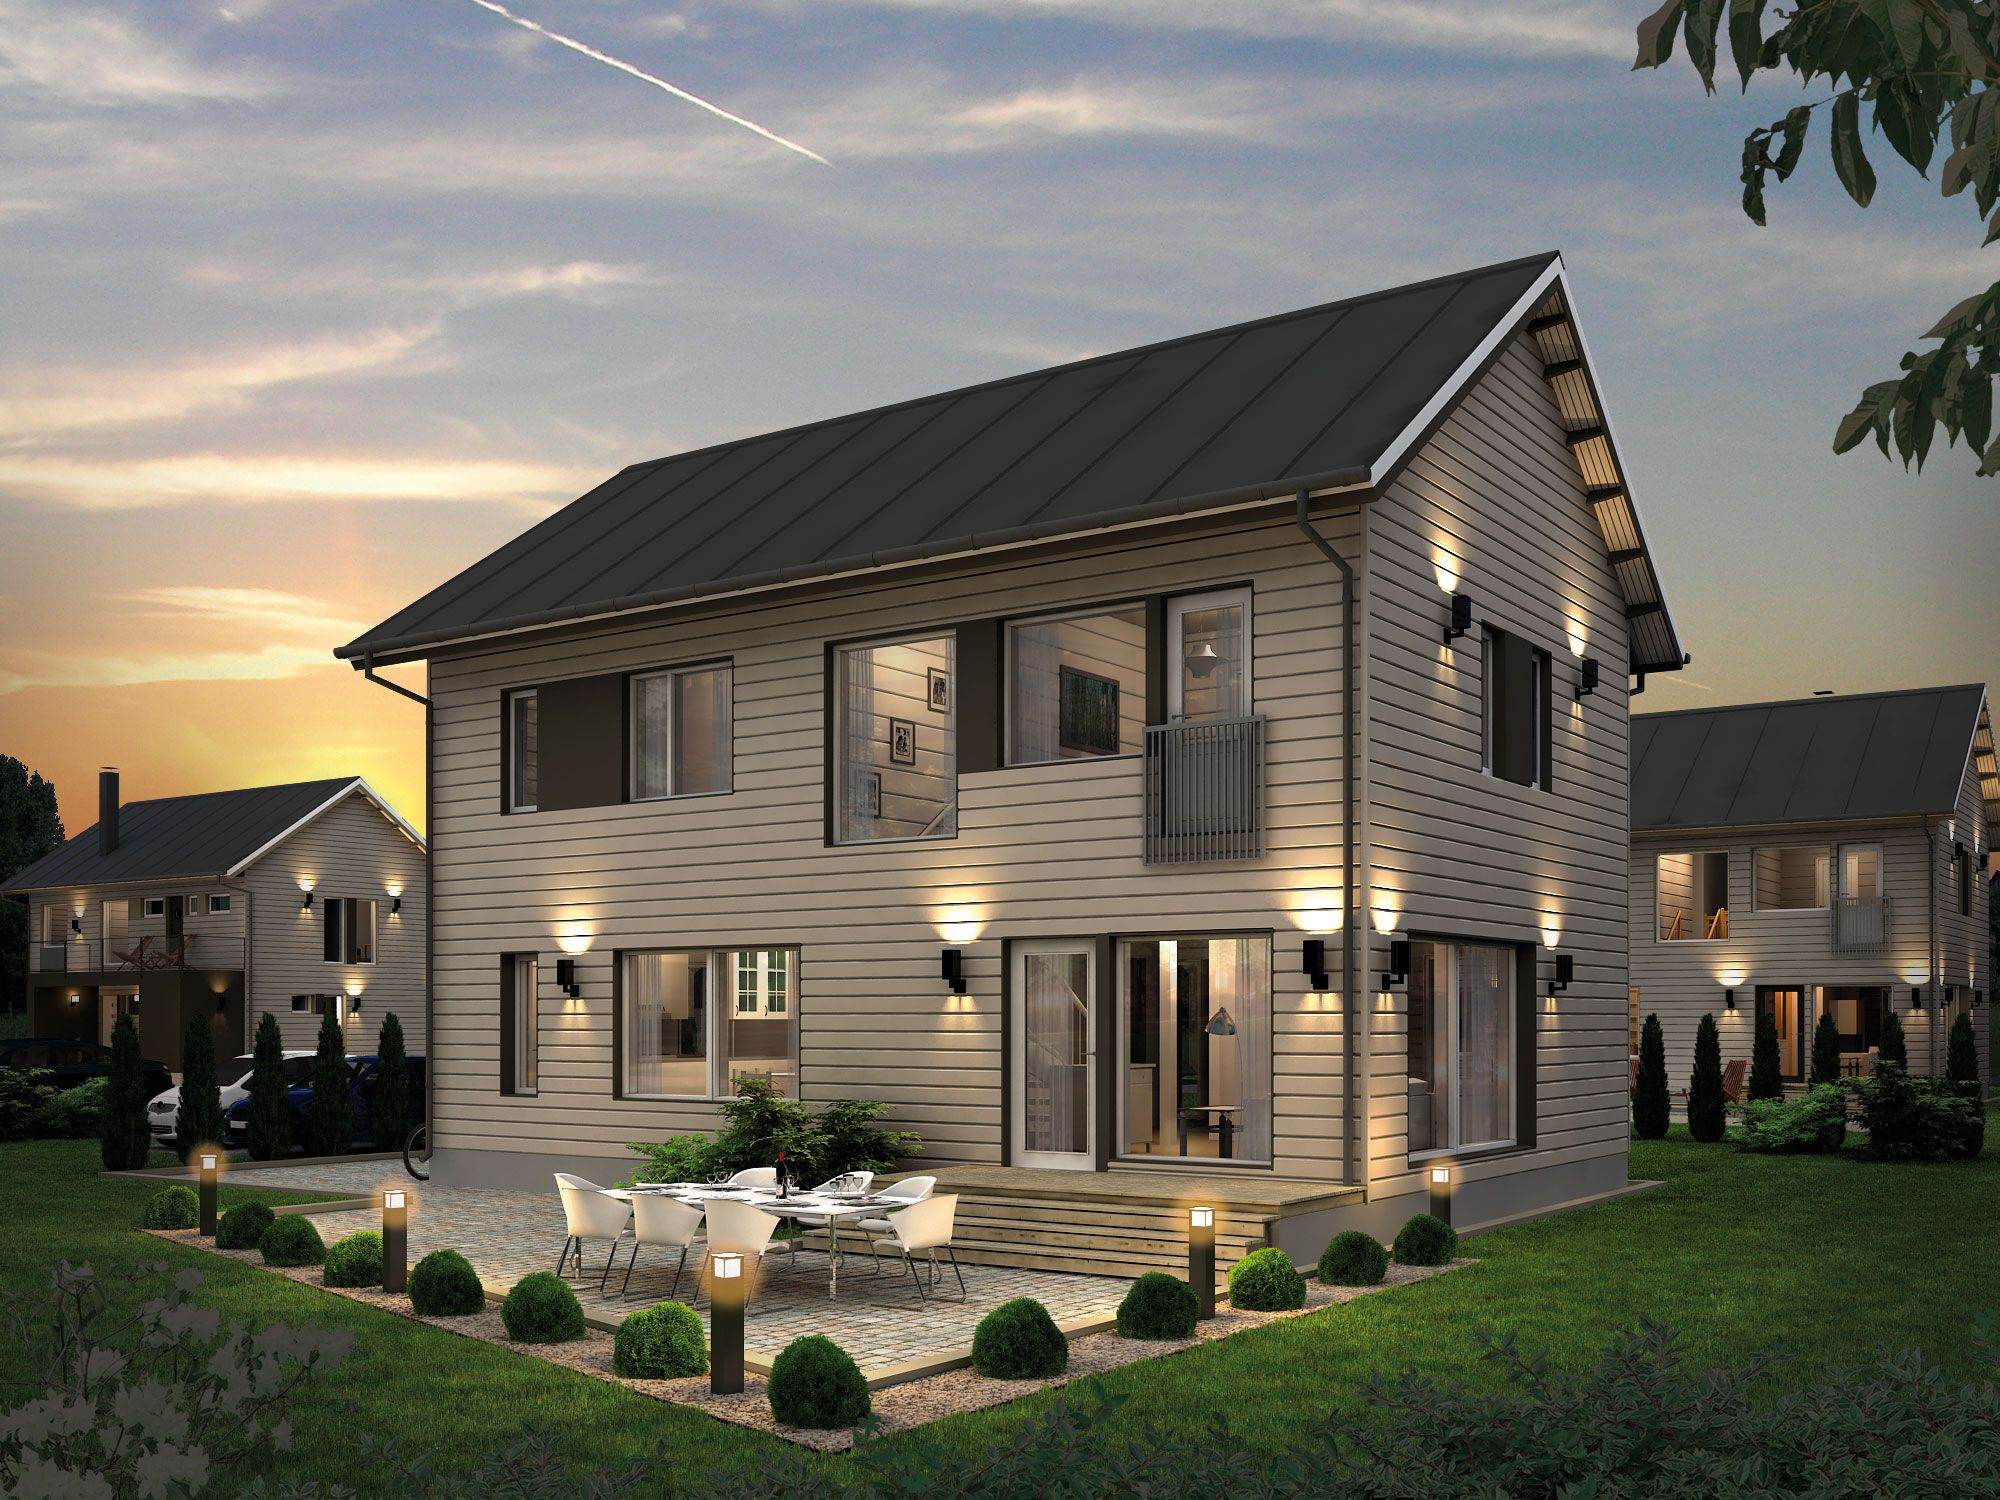 trendy prefabricated house on architecture with prefab homes modular prefab homes prefabricated house manufacturers photos - Deckideen Fr Modulare Huser